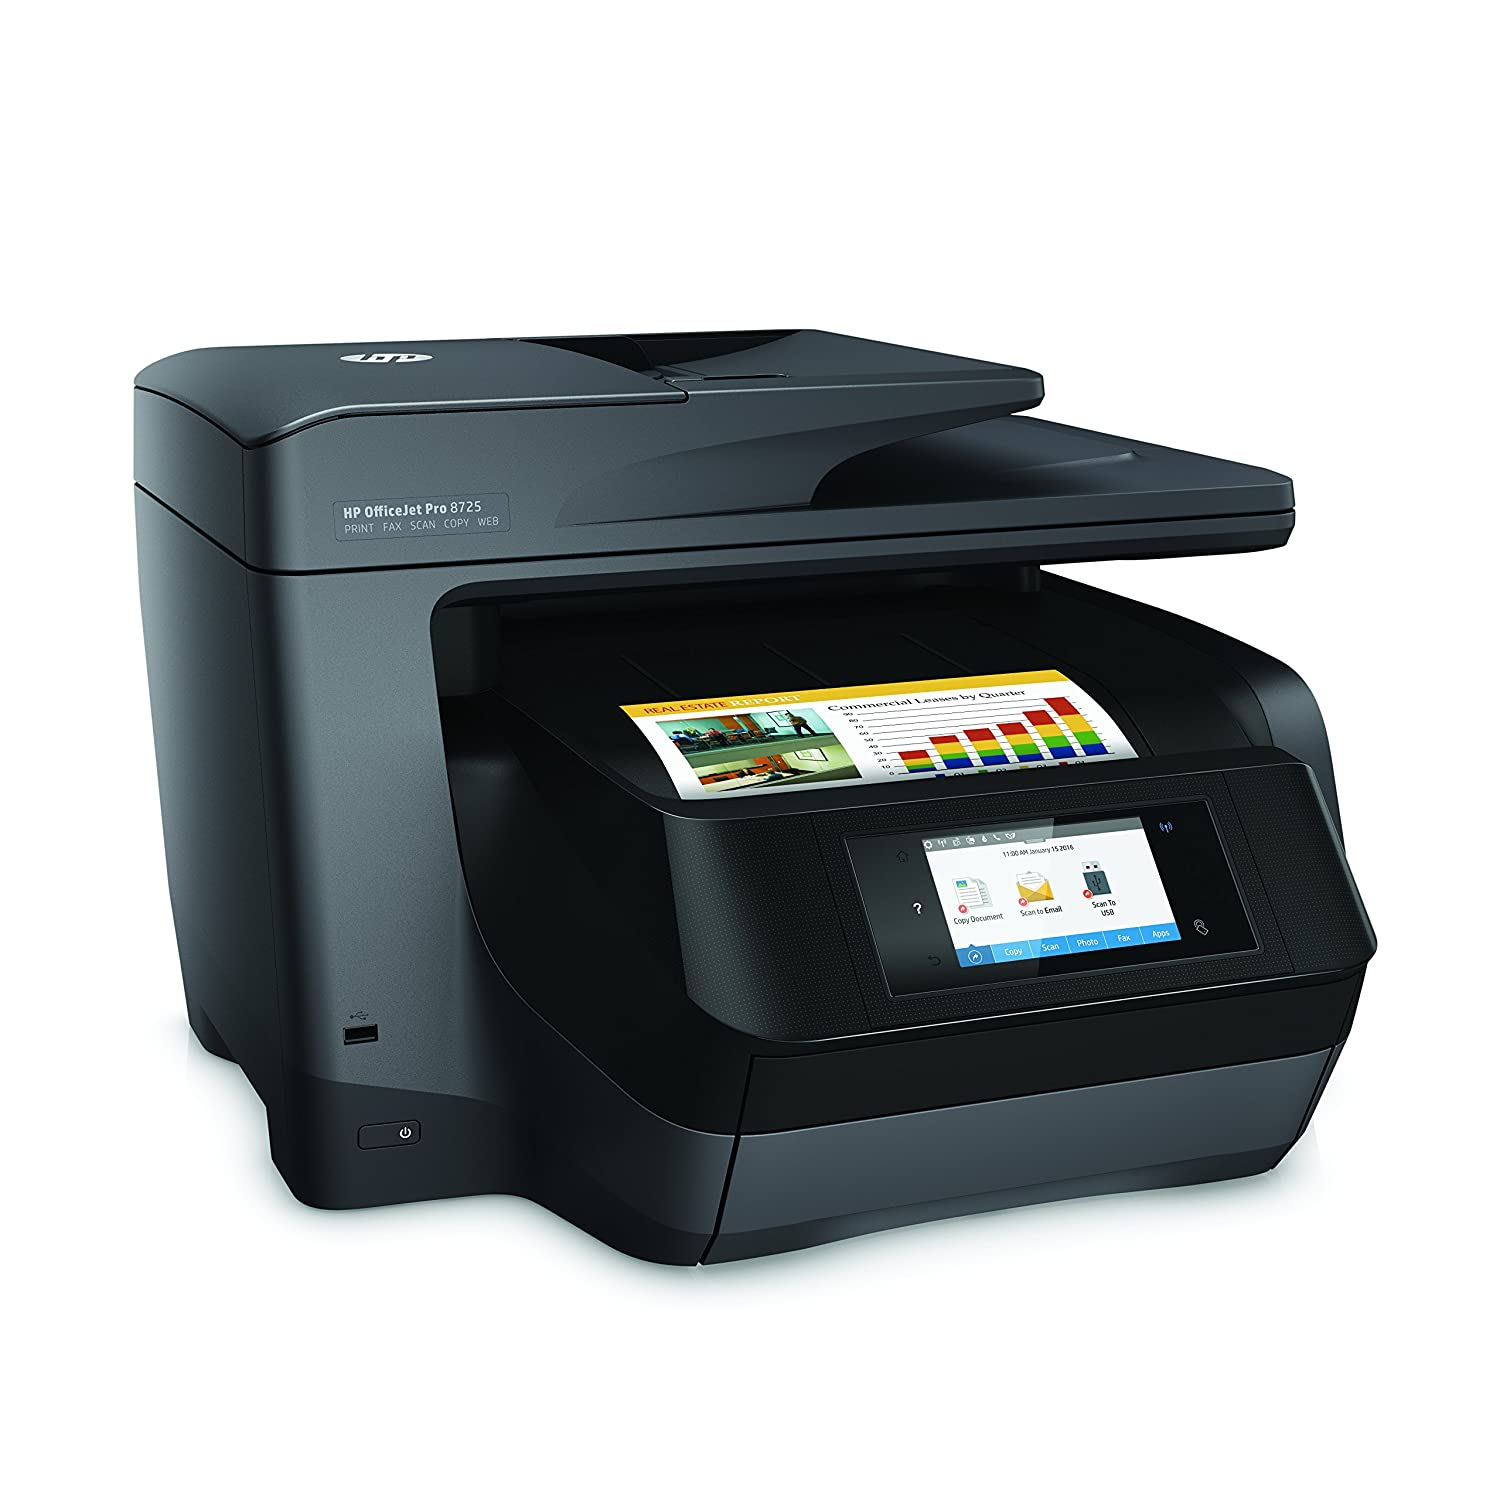 HP OfficeJet Pro 8725 All-in-One Printer - Instant Ink